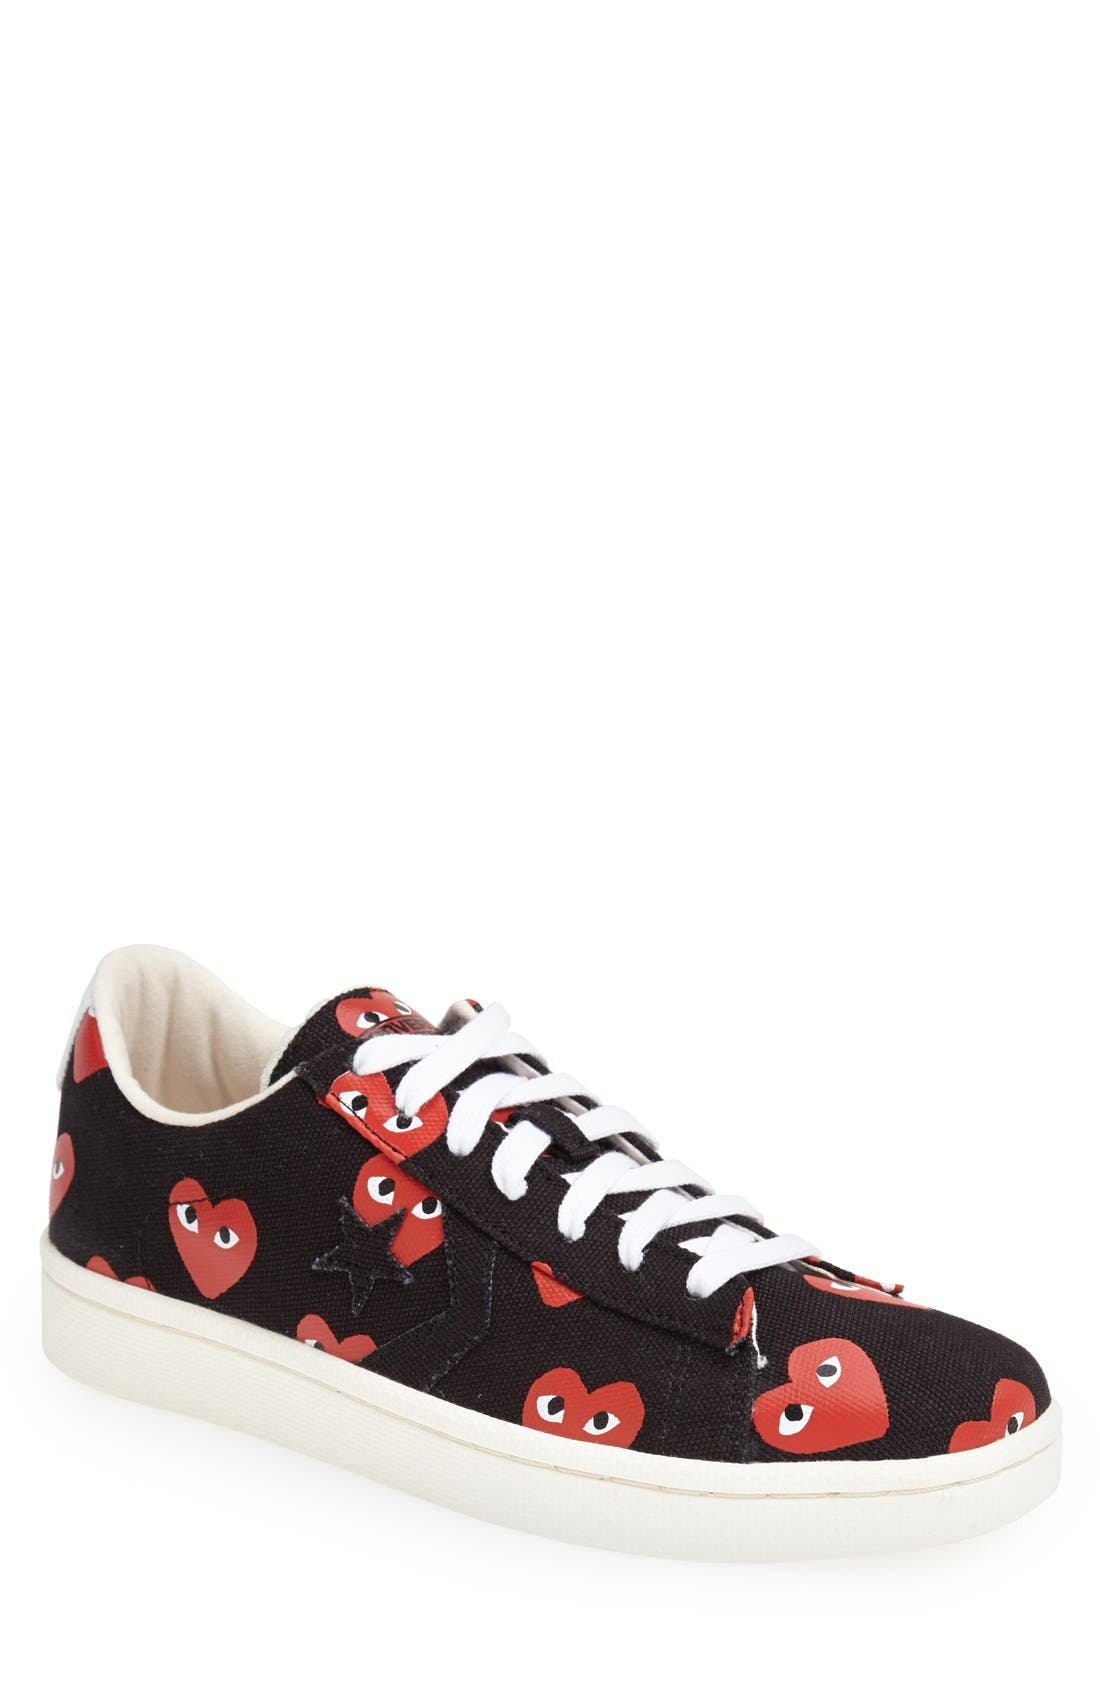 PLAY x Converse Chuck Taylor<sup>®</sup> Low Top Sneaker, Main, color, 001